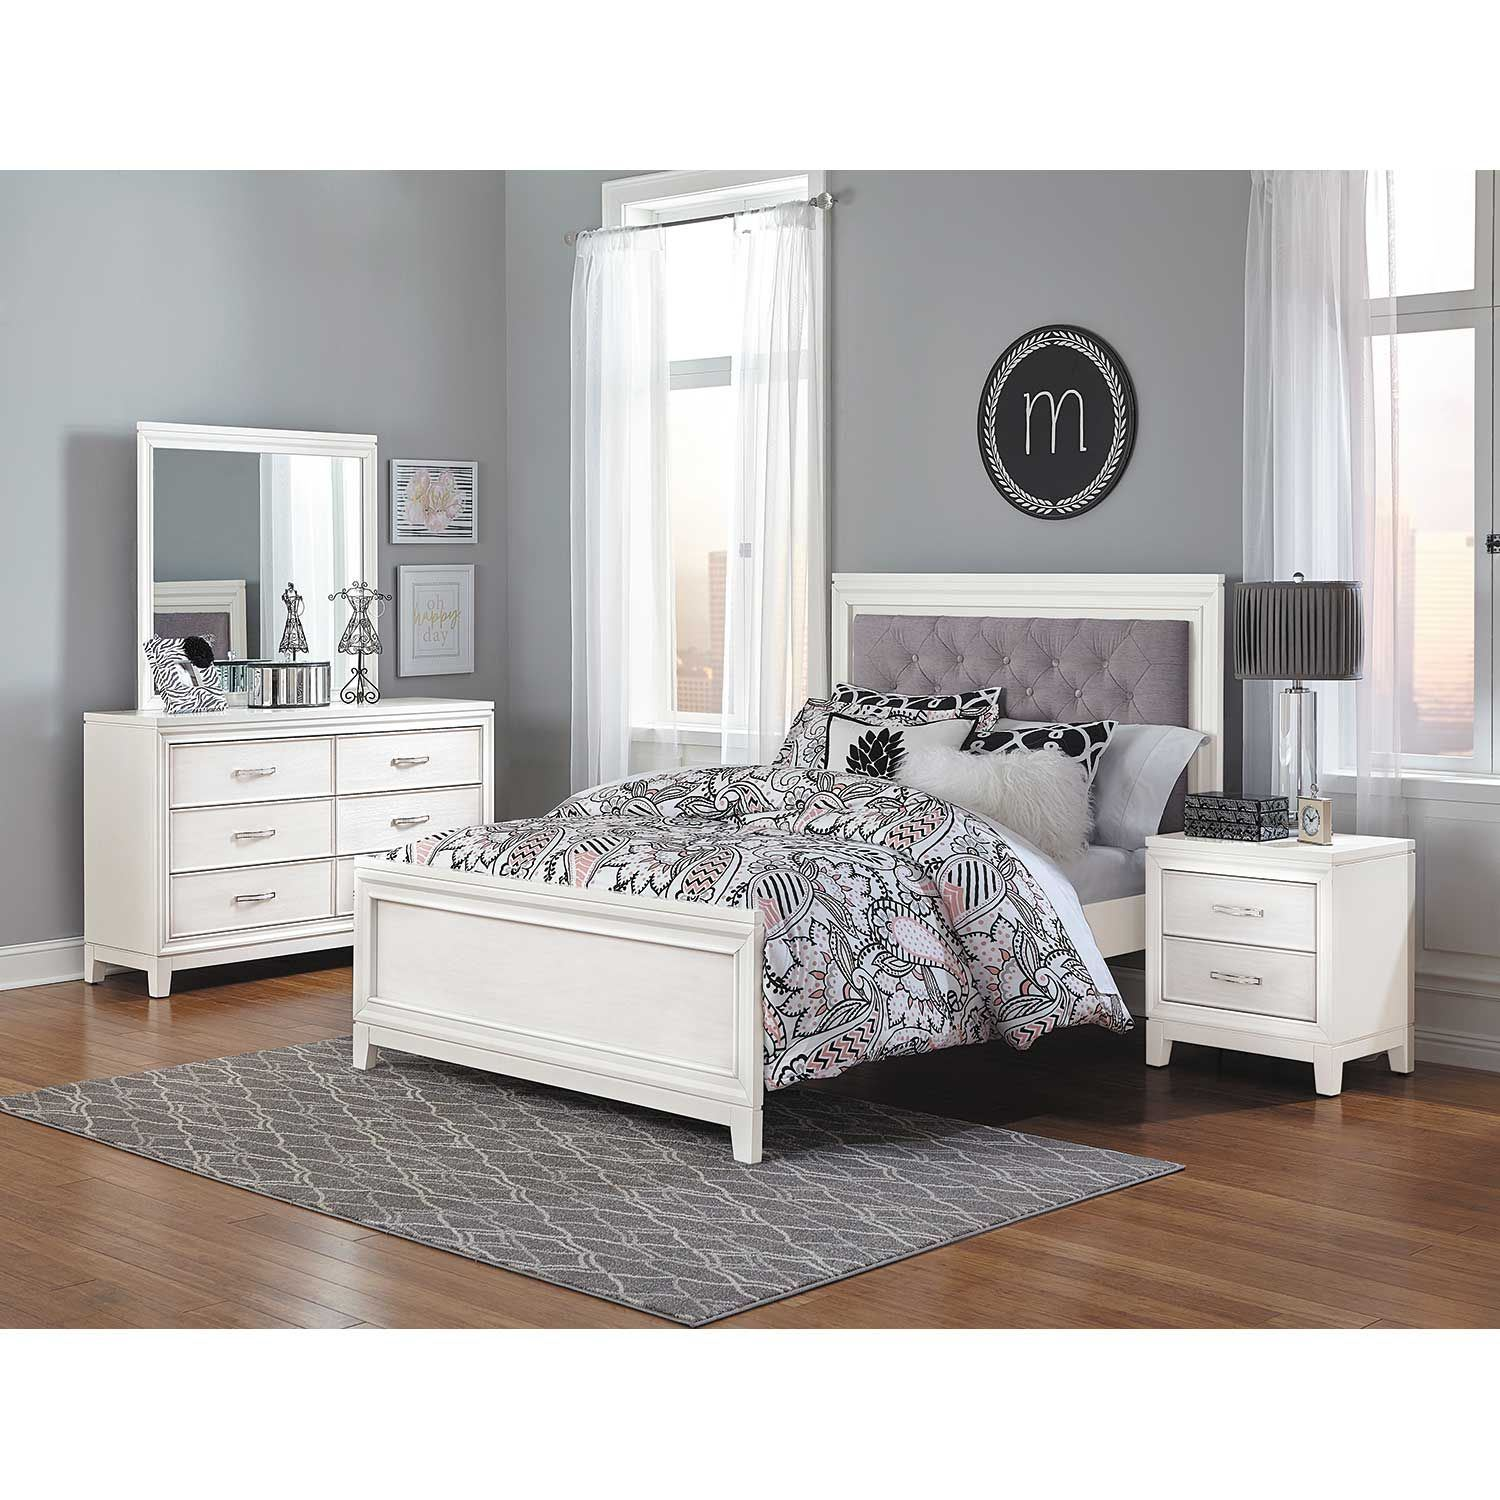 Picture of Evelyn Full Bed